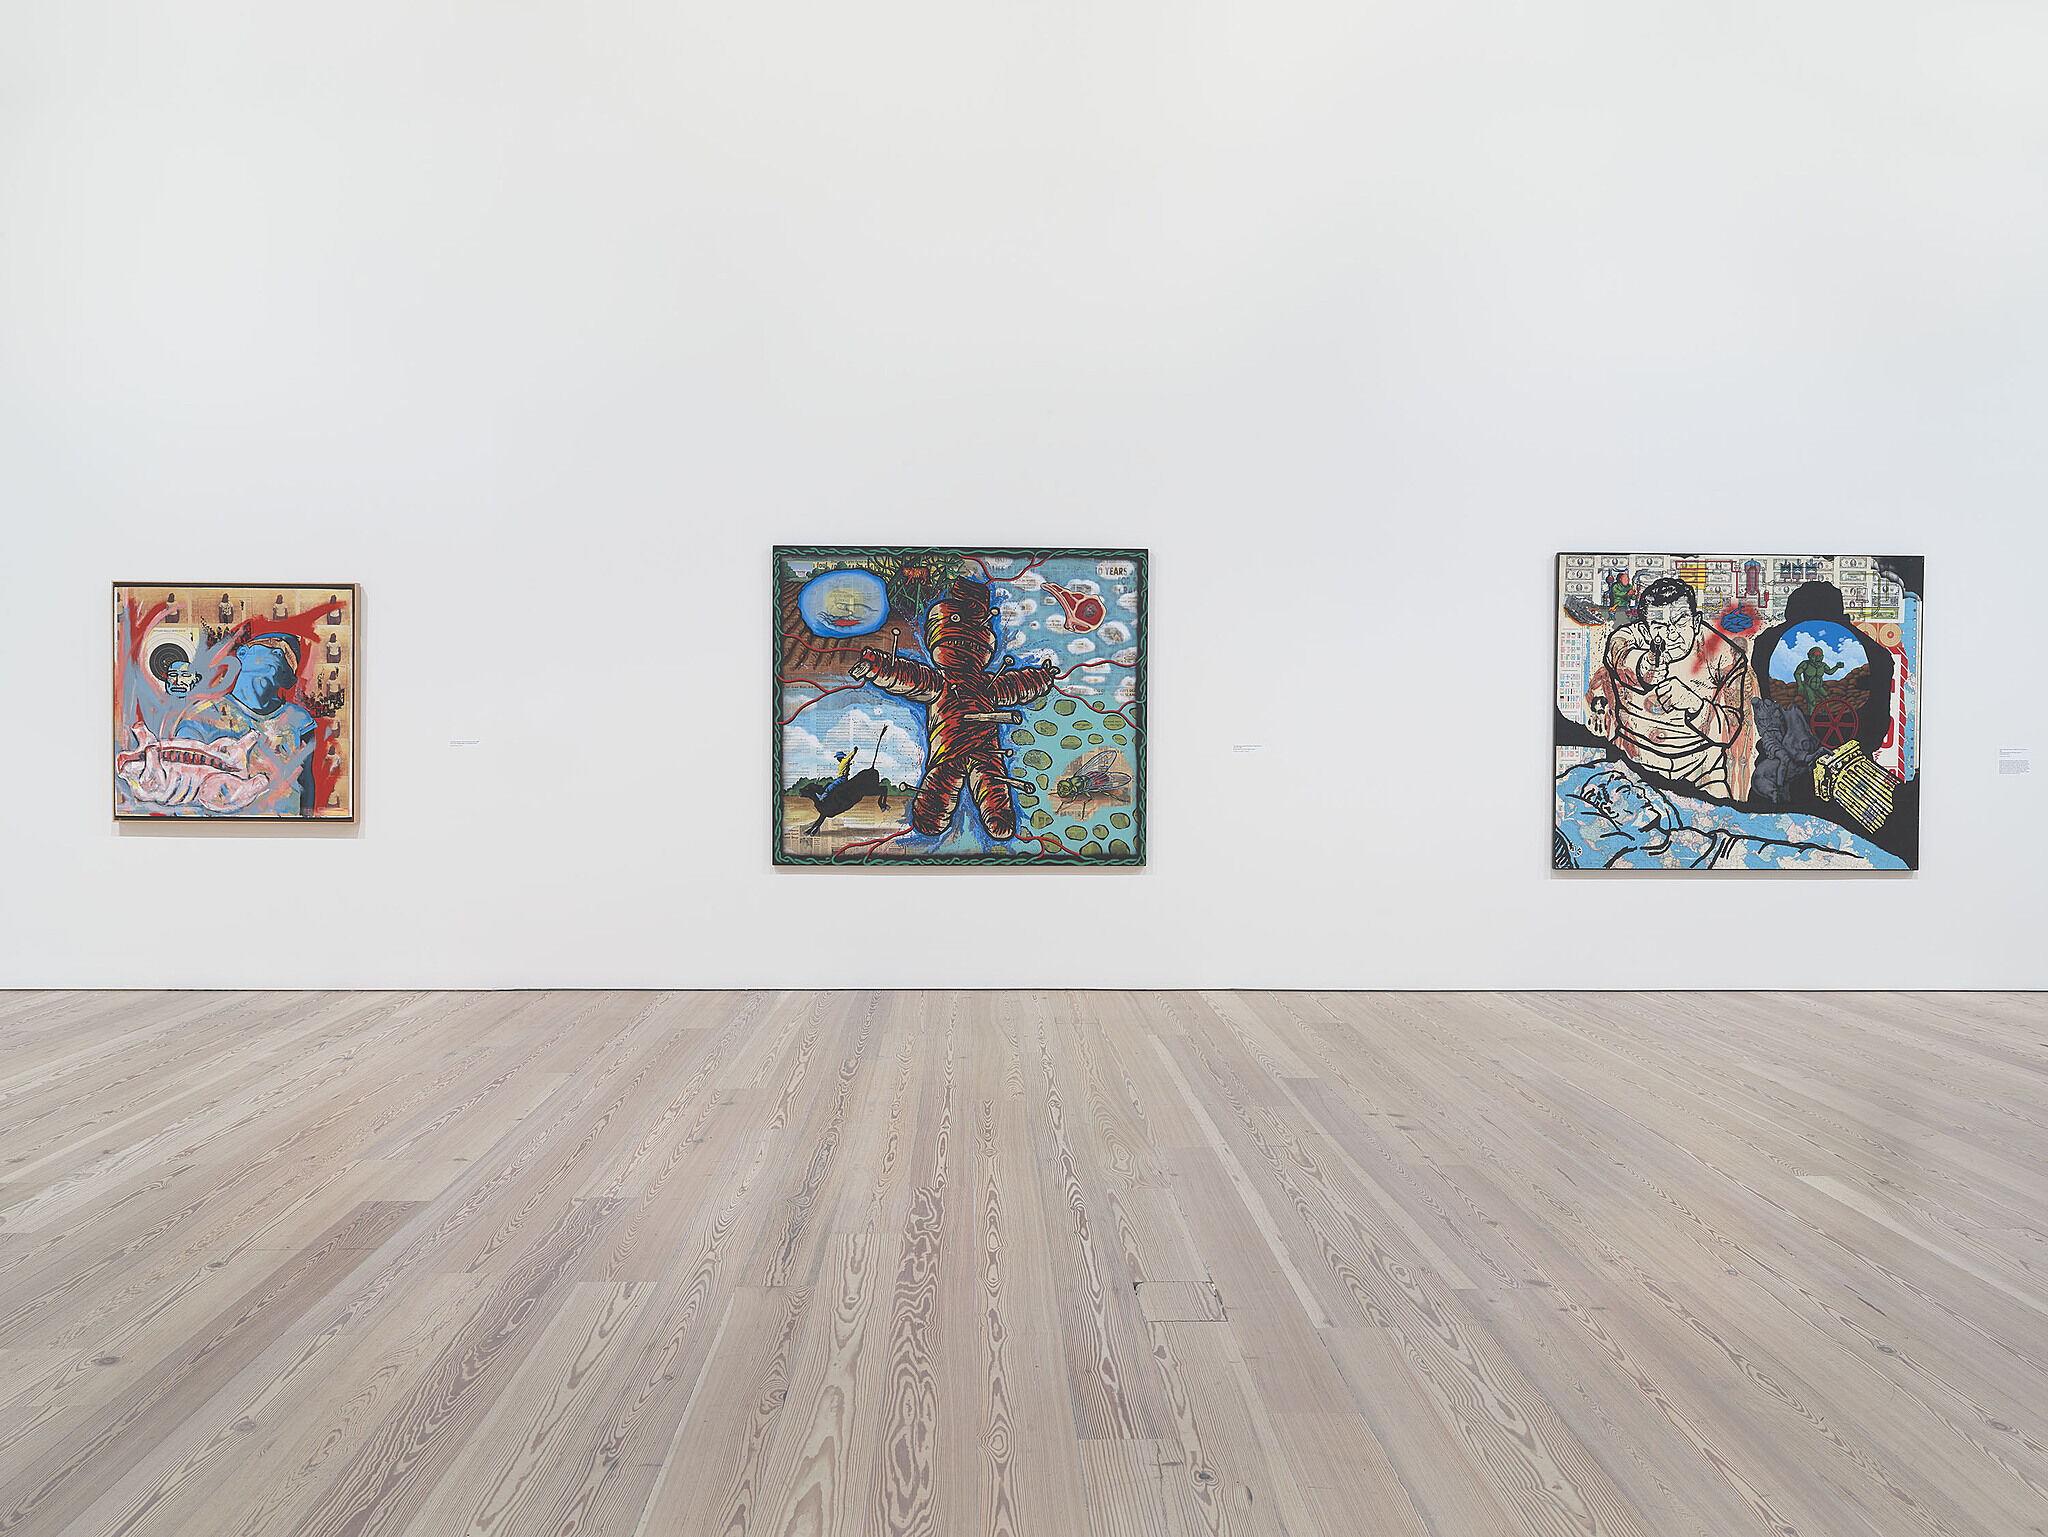 An image of the Whitney galleries with various artworks on the wall